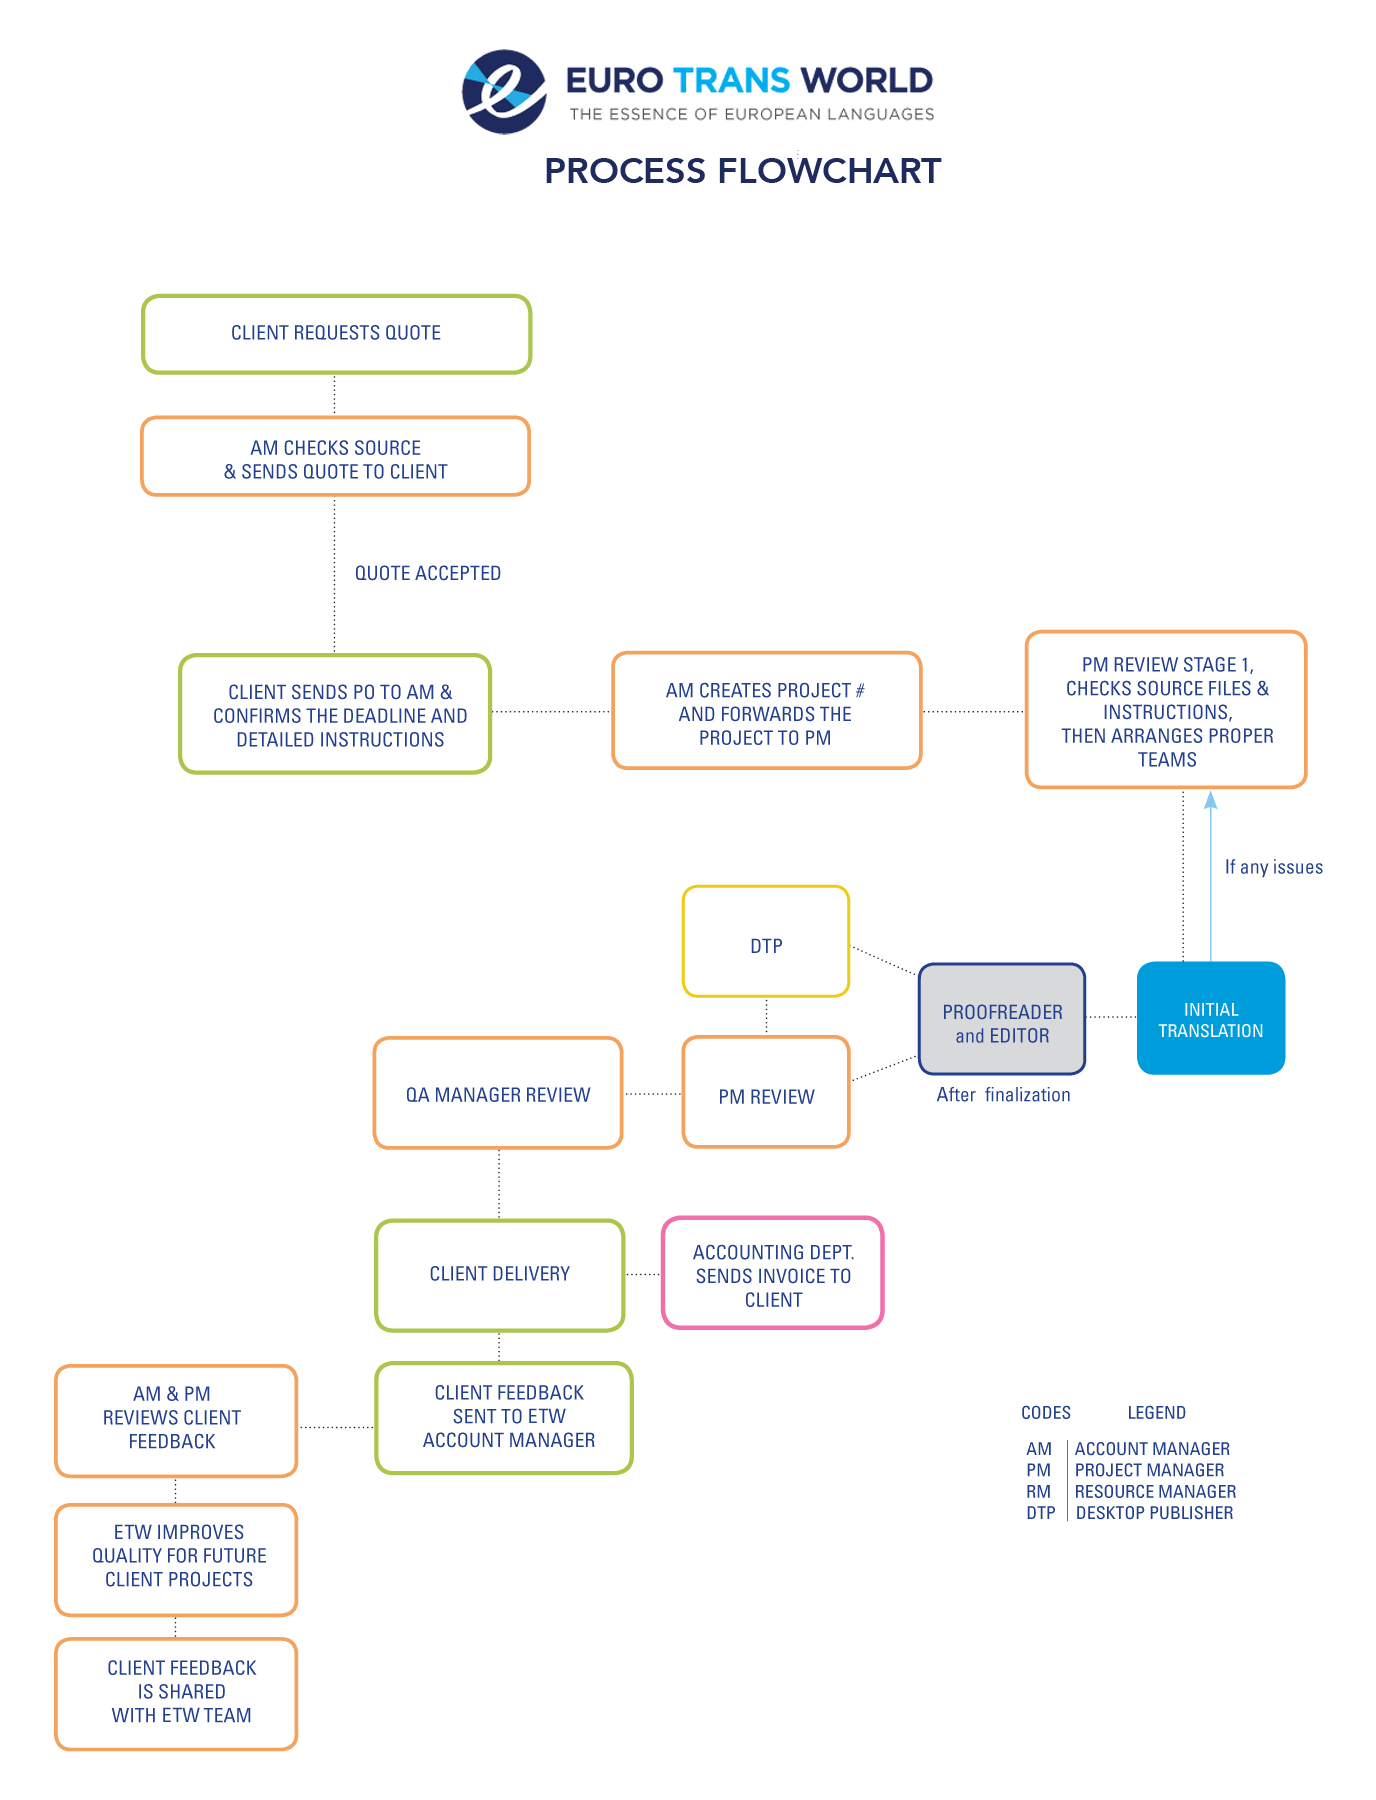 PROCESS FLOWCHART_updated to ETW